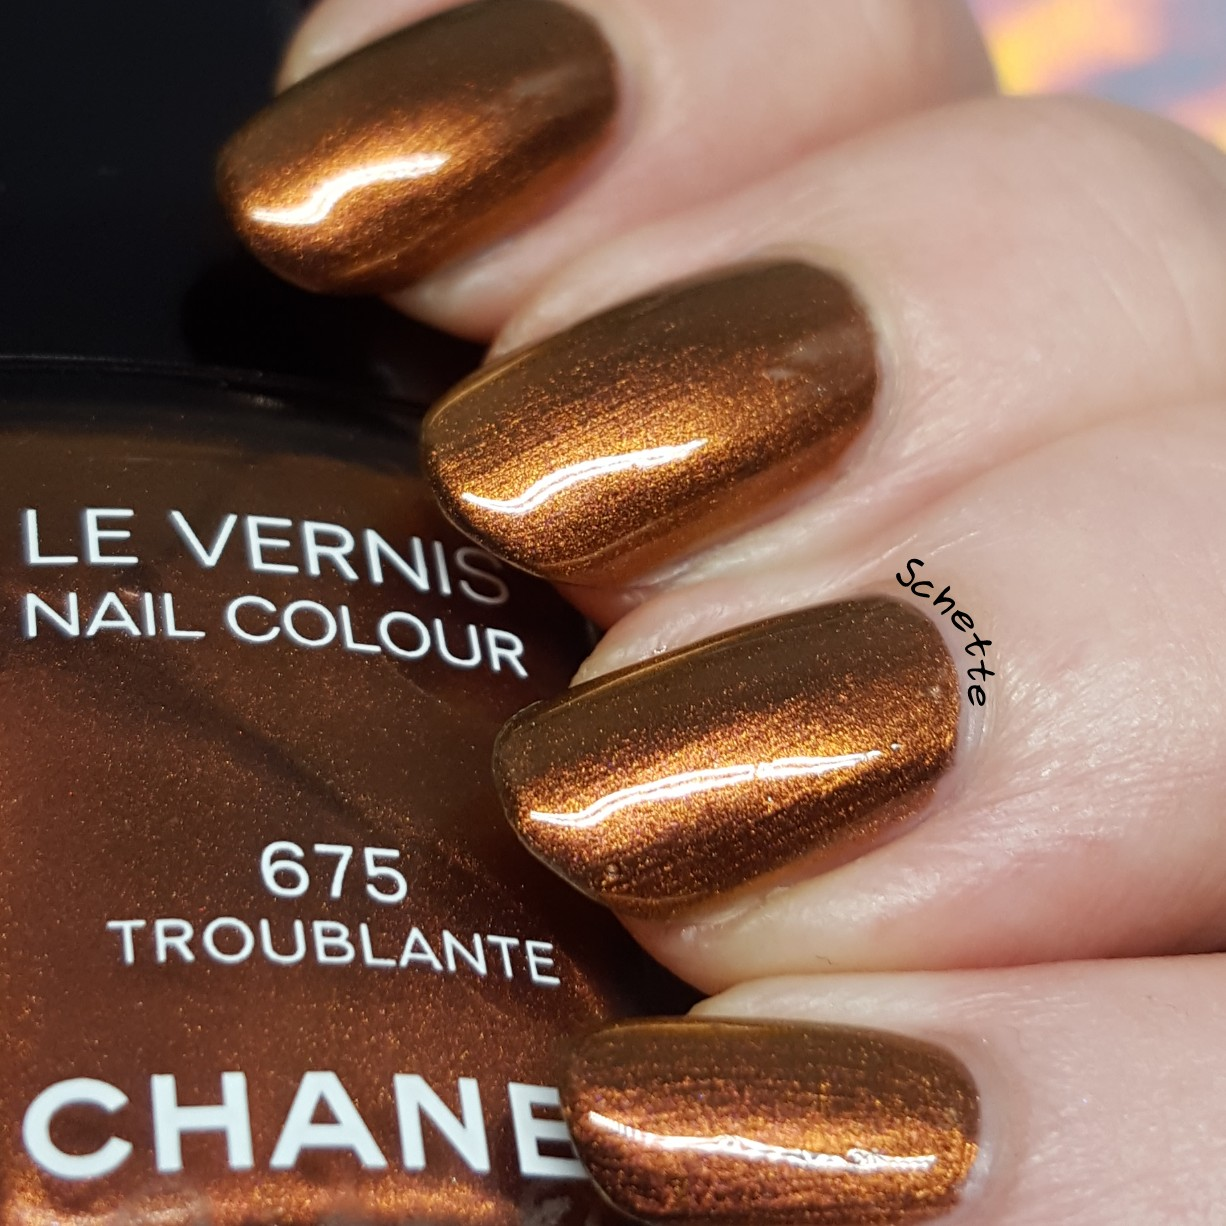 Chanel - Troublante